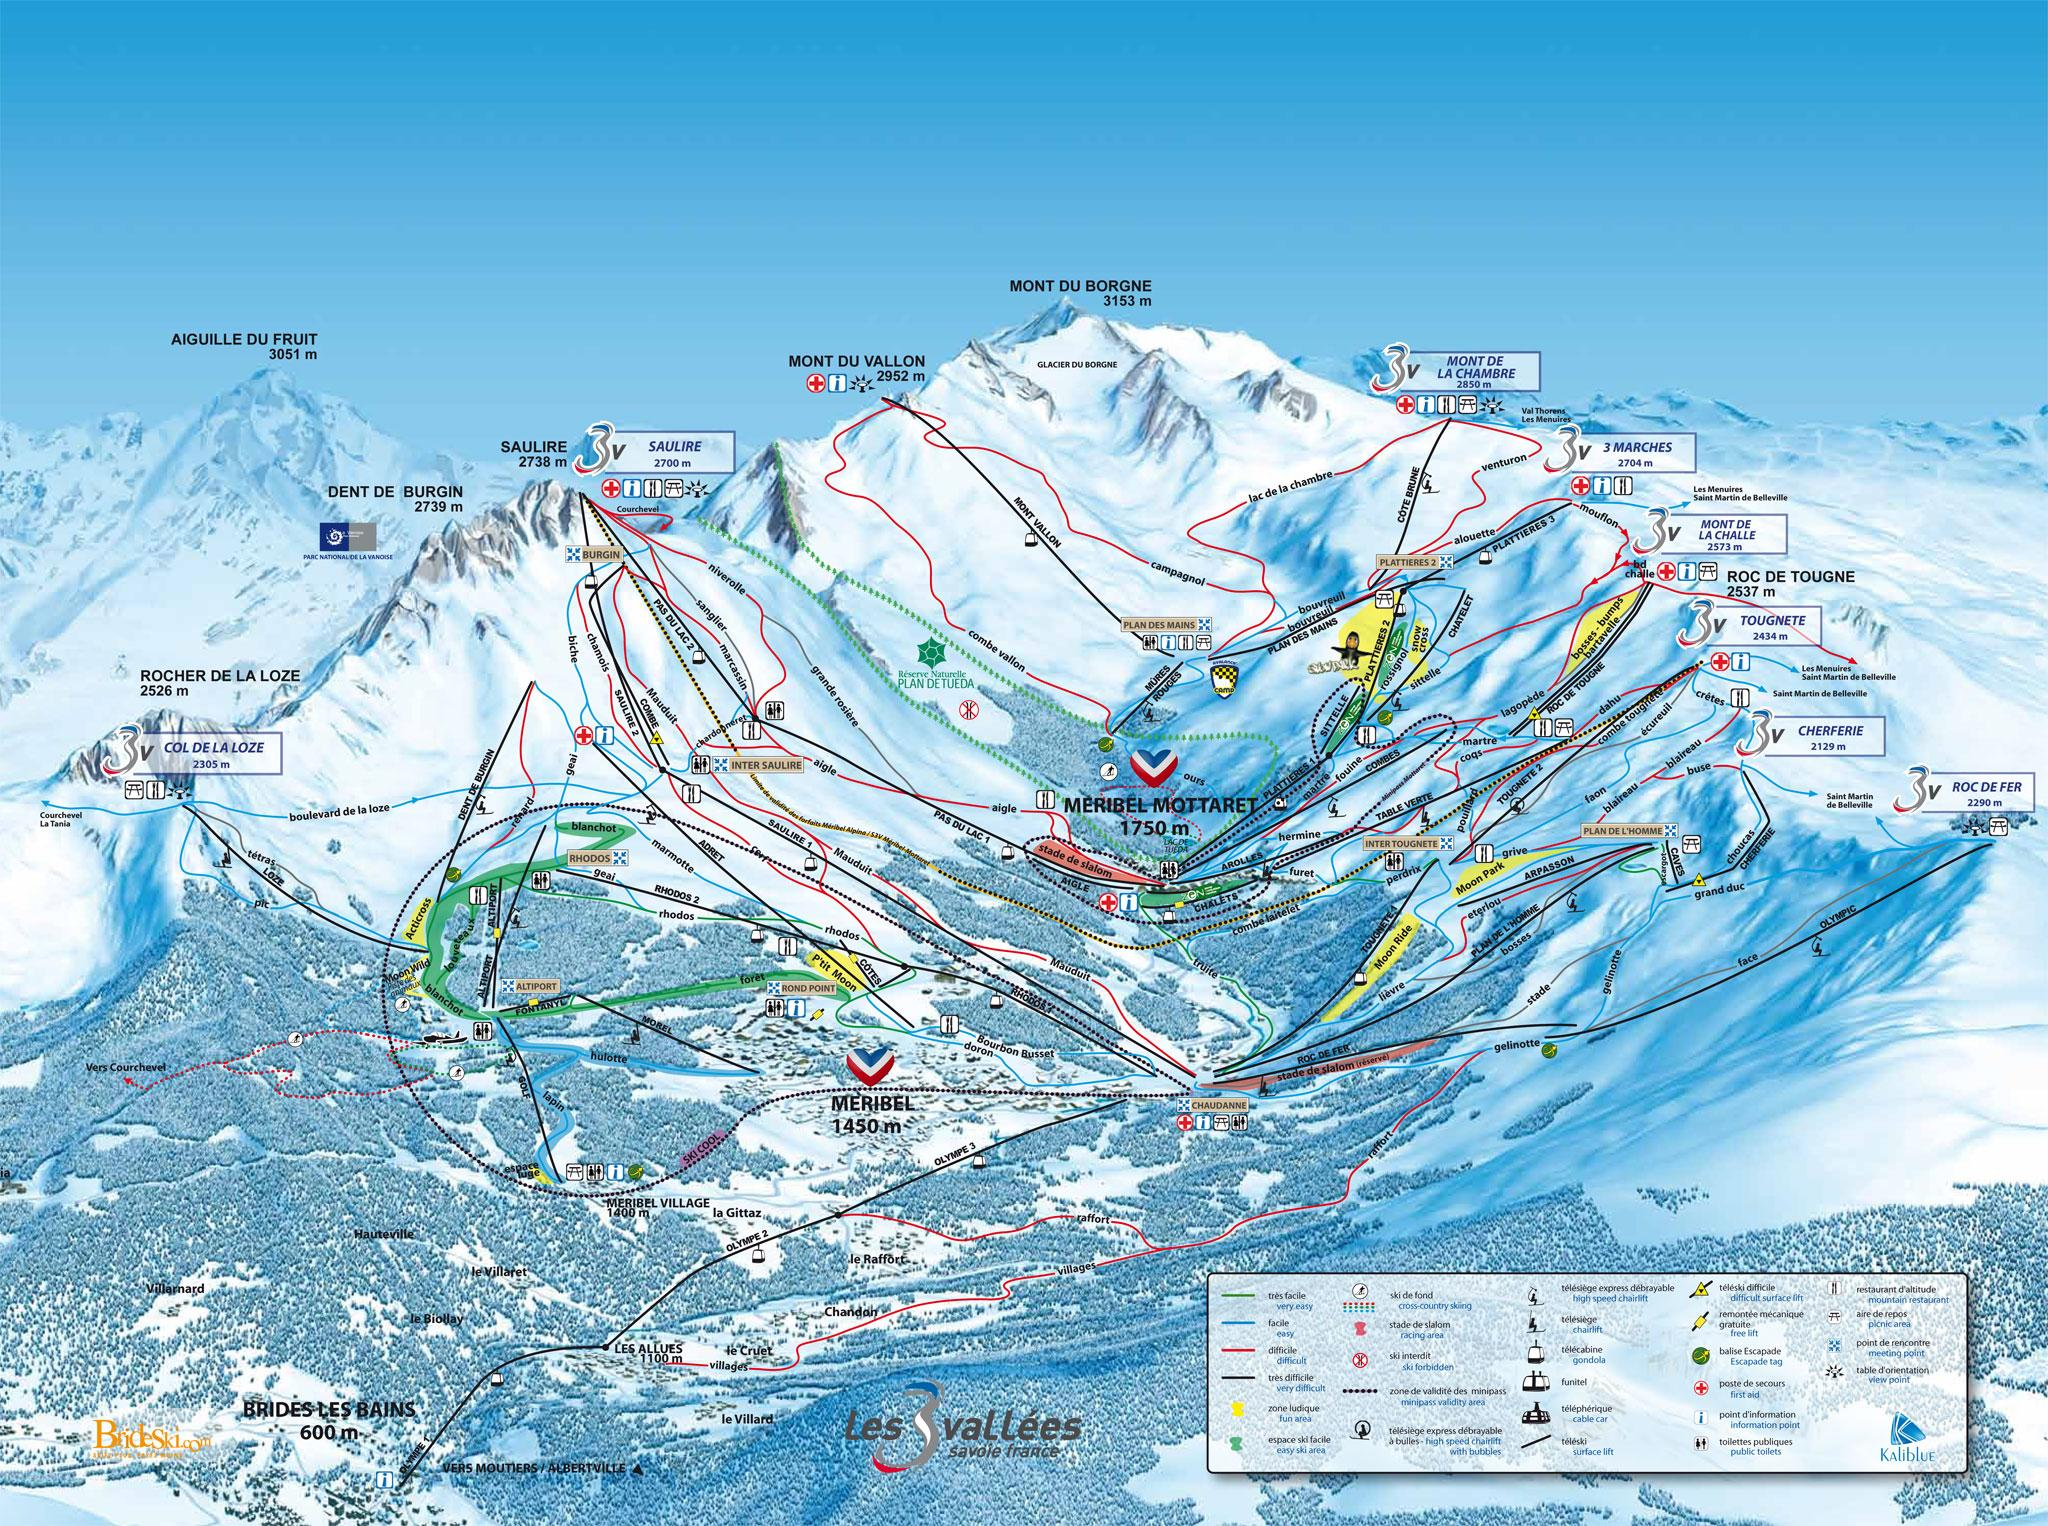 Meribel Piste Map Méribel Mottaret Piste Map | J2Ski Meribel Piste Map